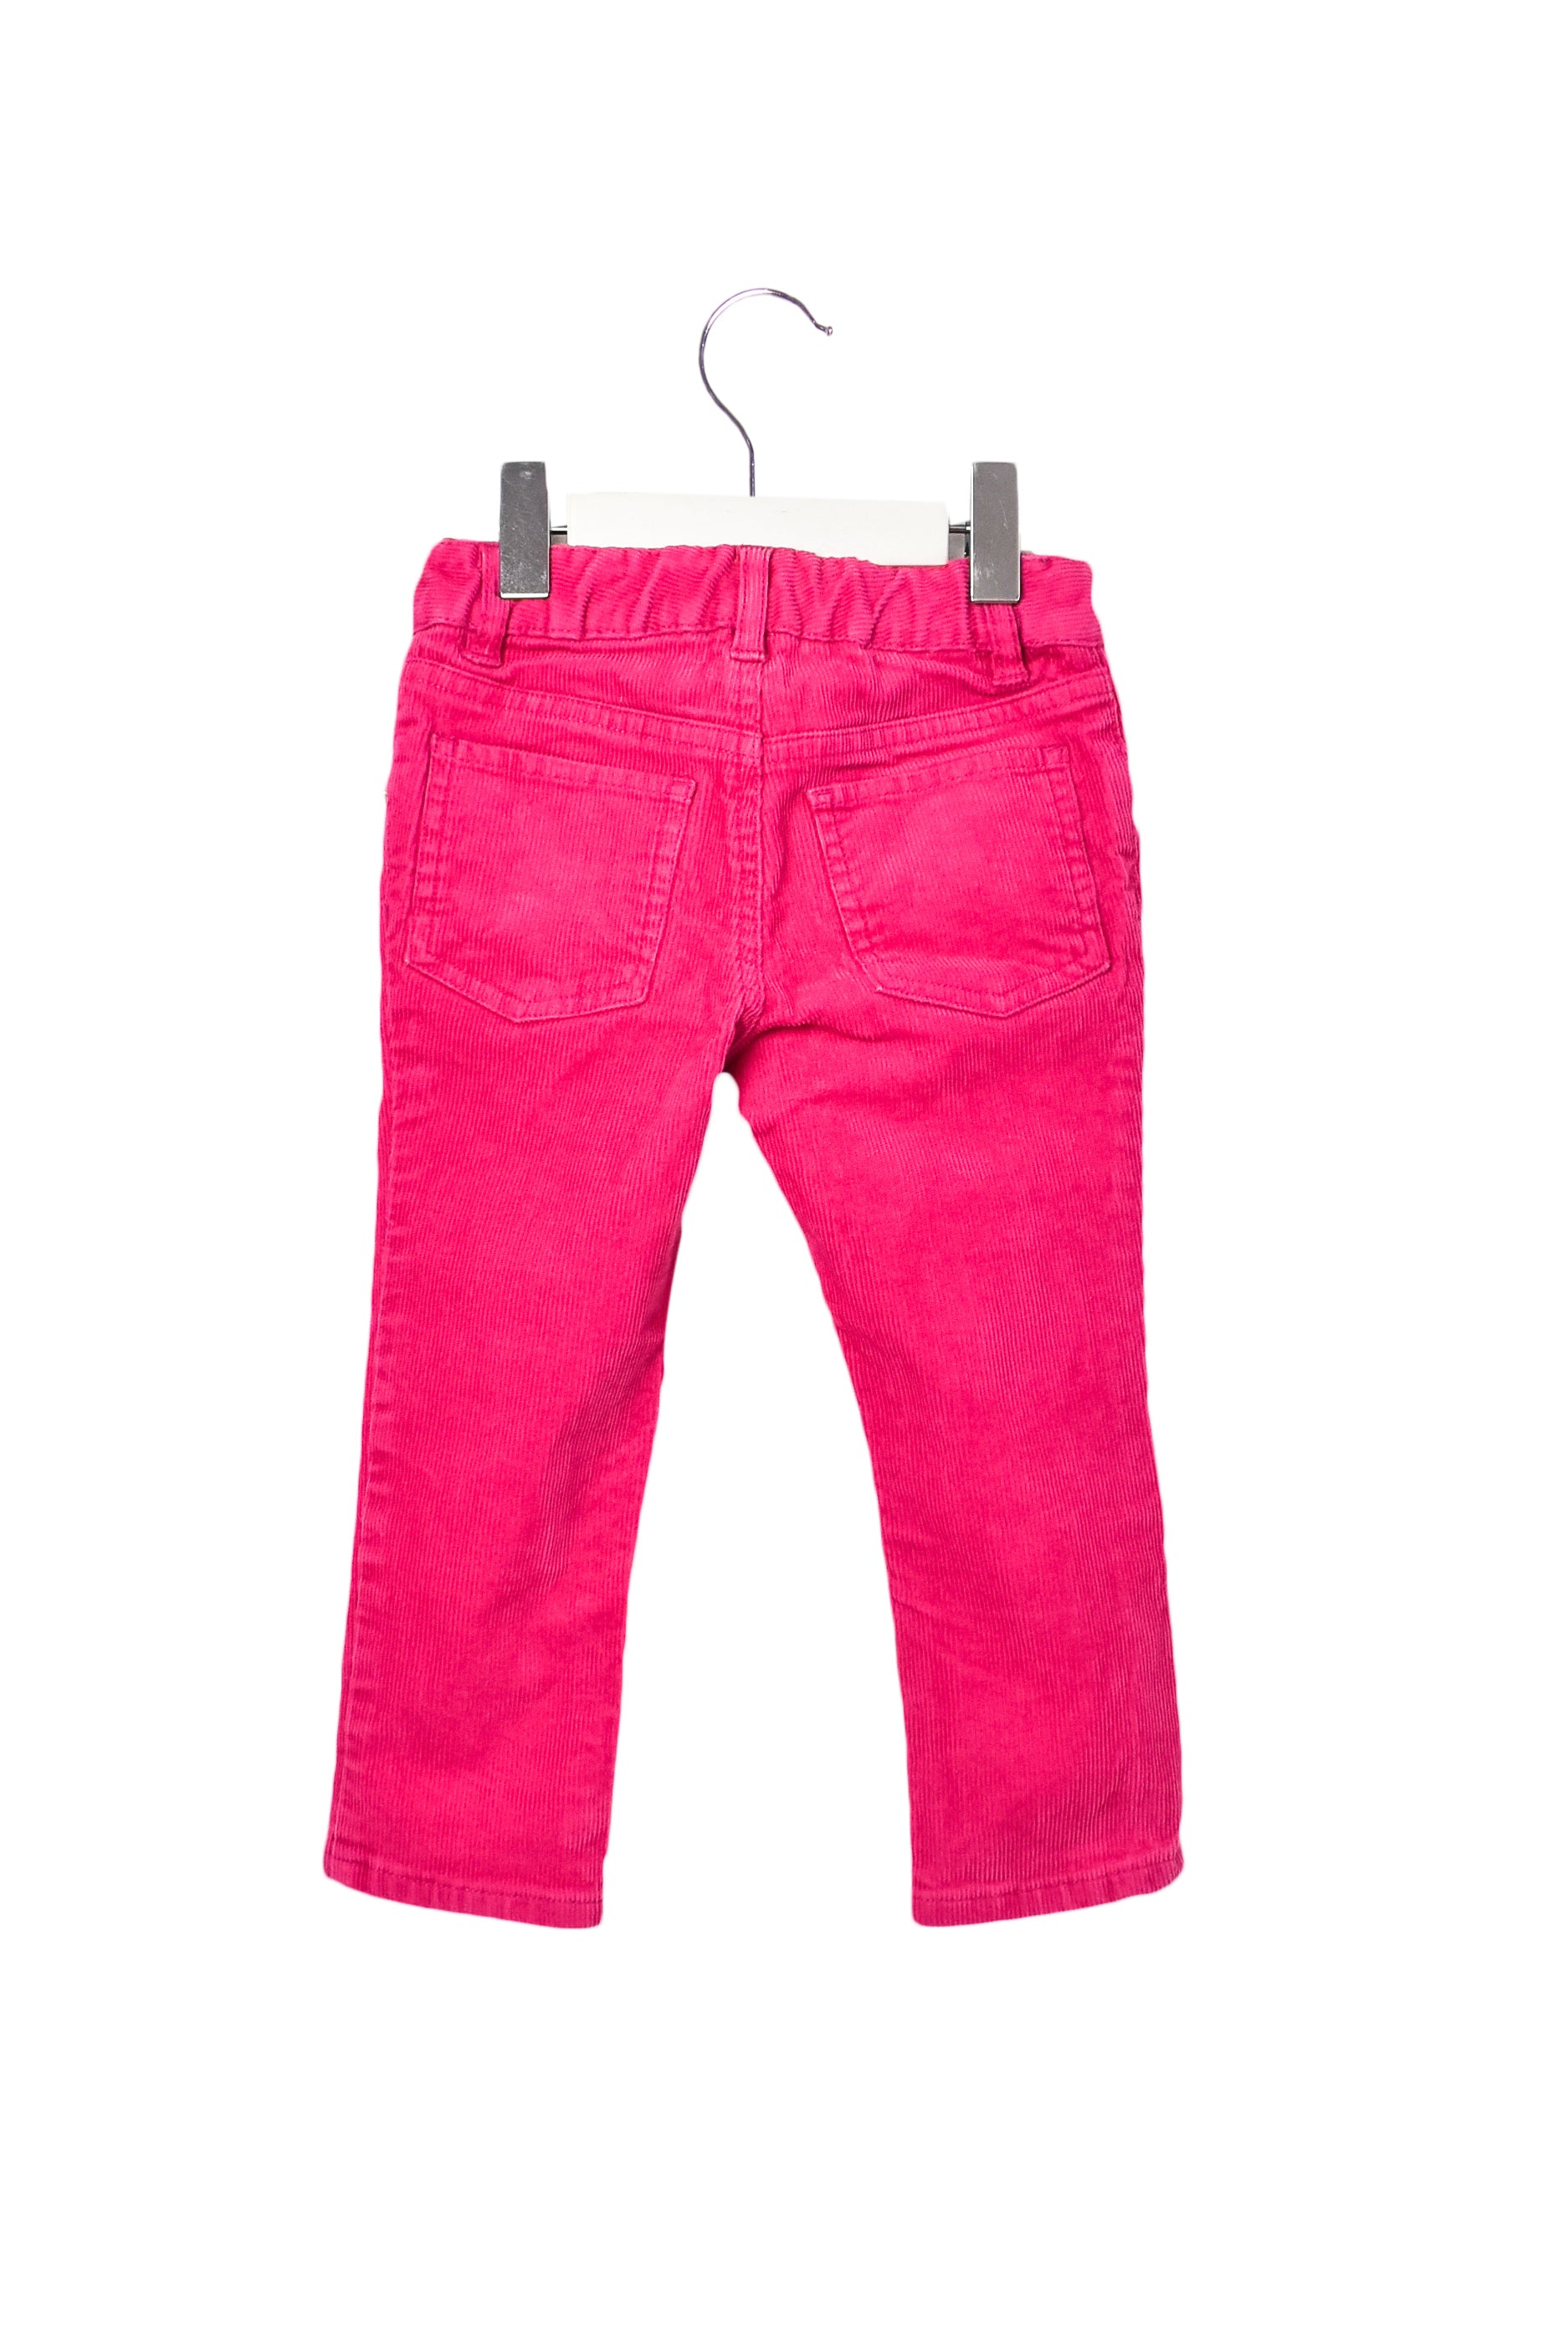 10006658 Polo Ralph Lauren Kids~Pants 2T at Retykle